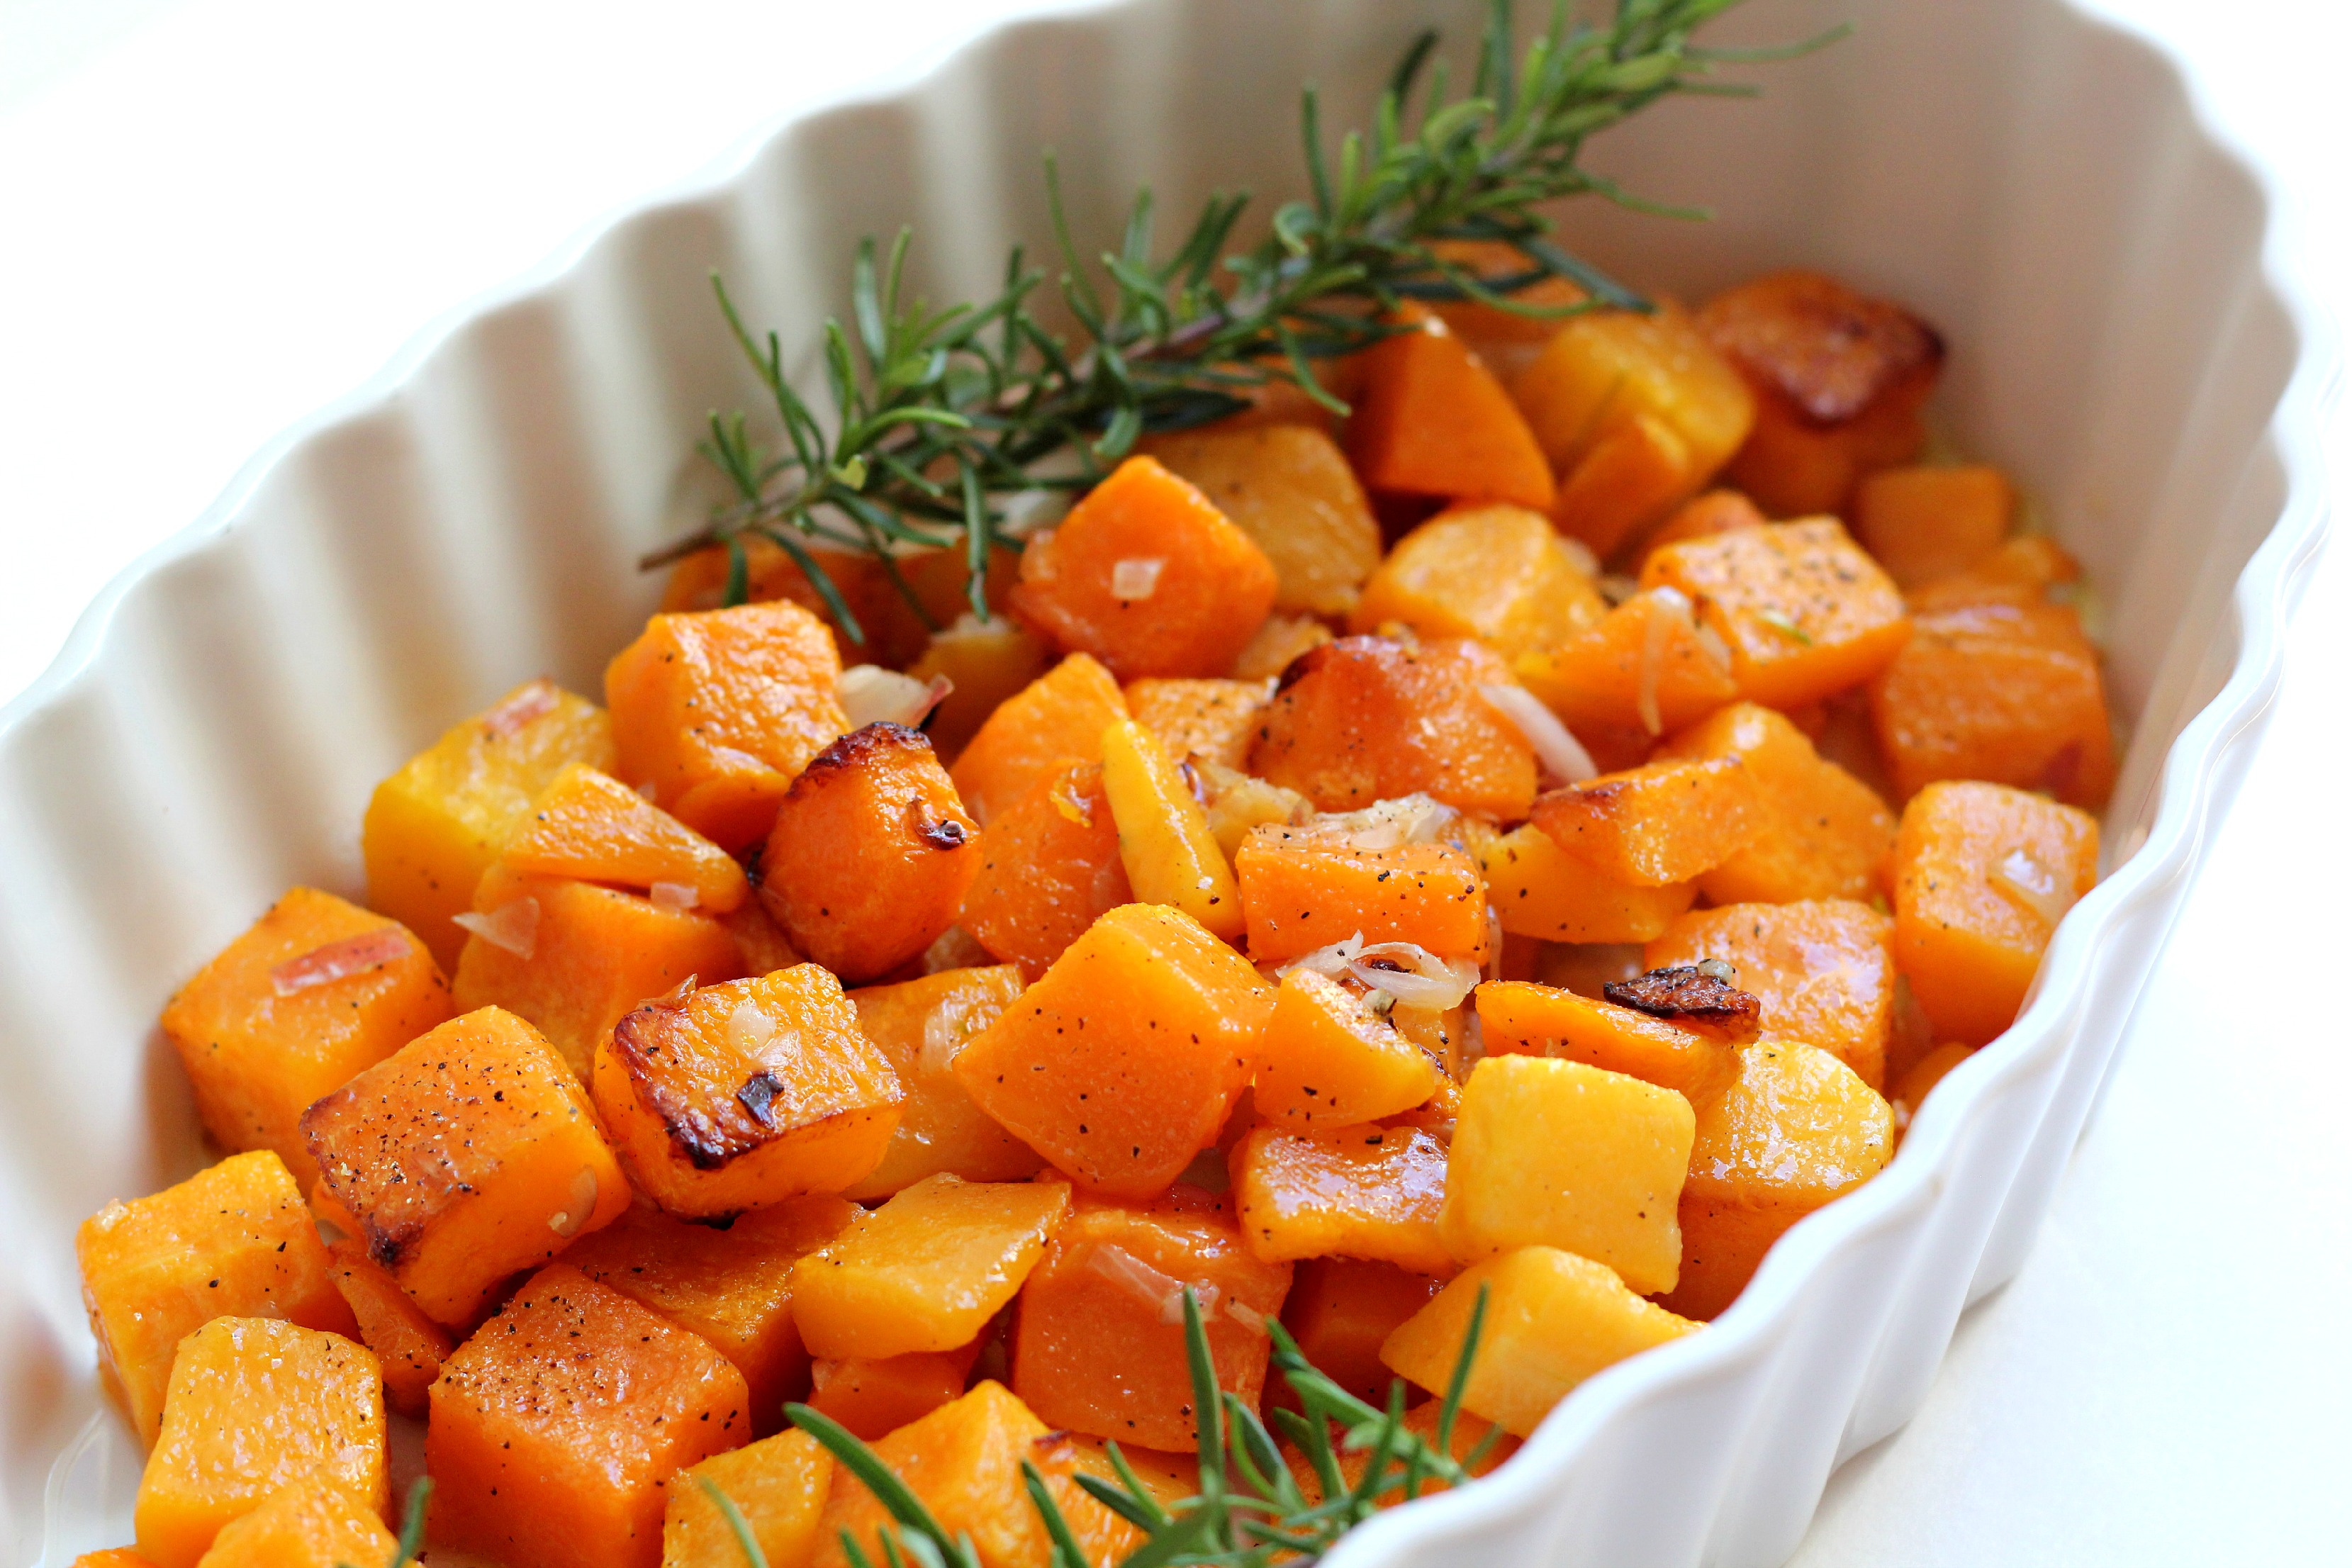 Shallot and Rosemary Roasted Butternut Squash – from Alternative Autoimmune Cookbook